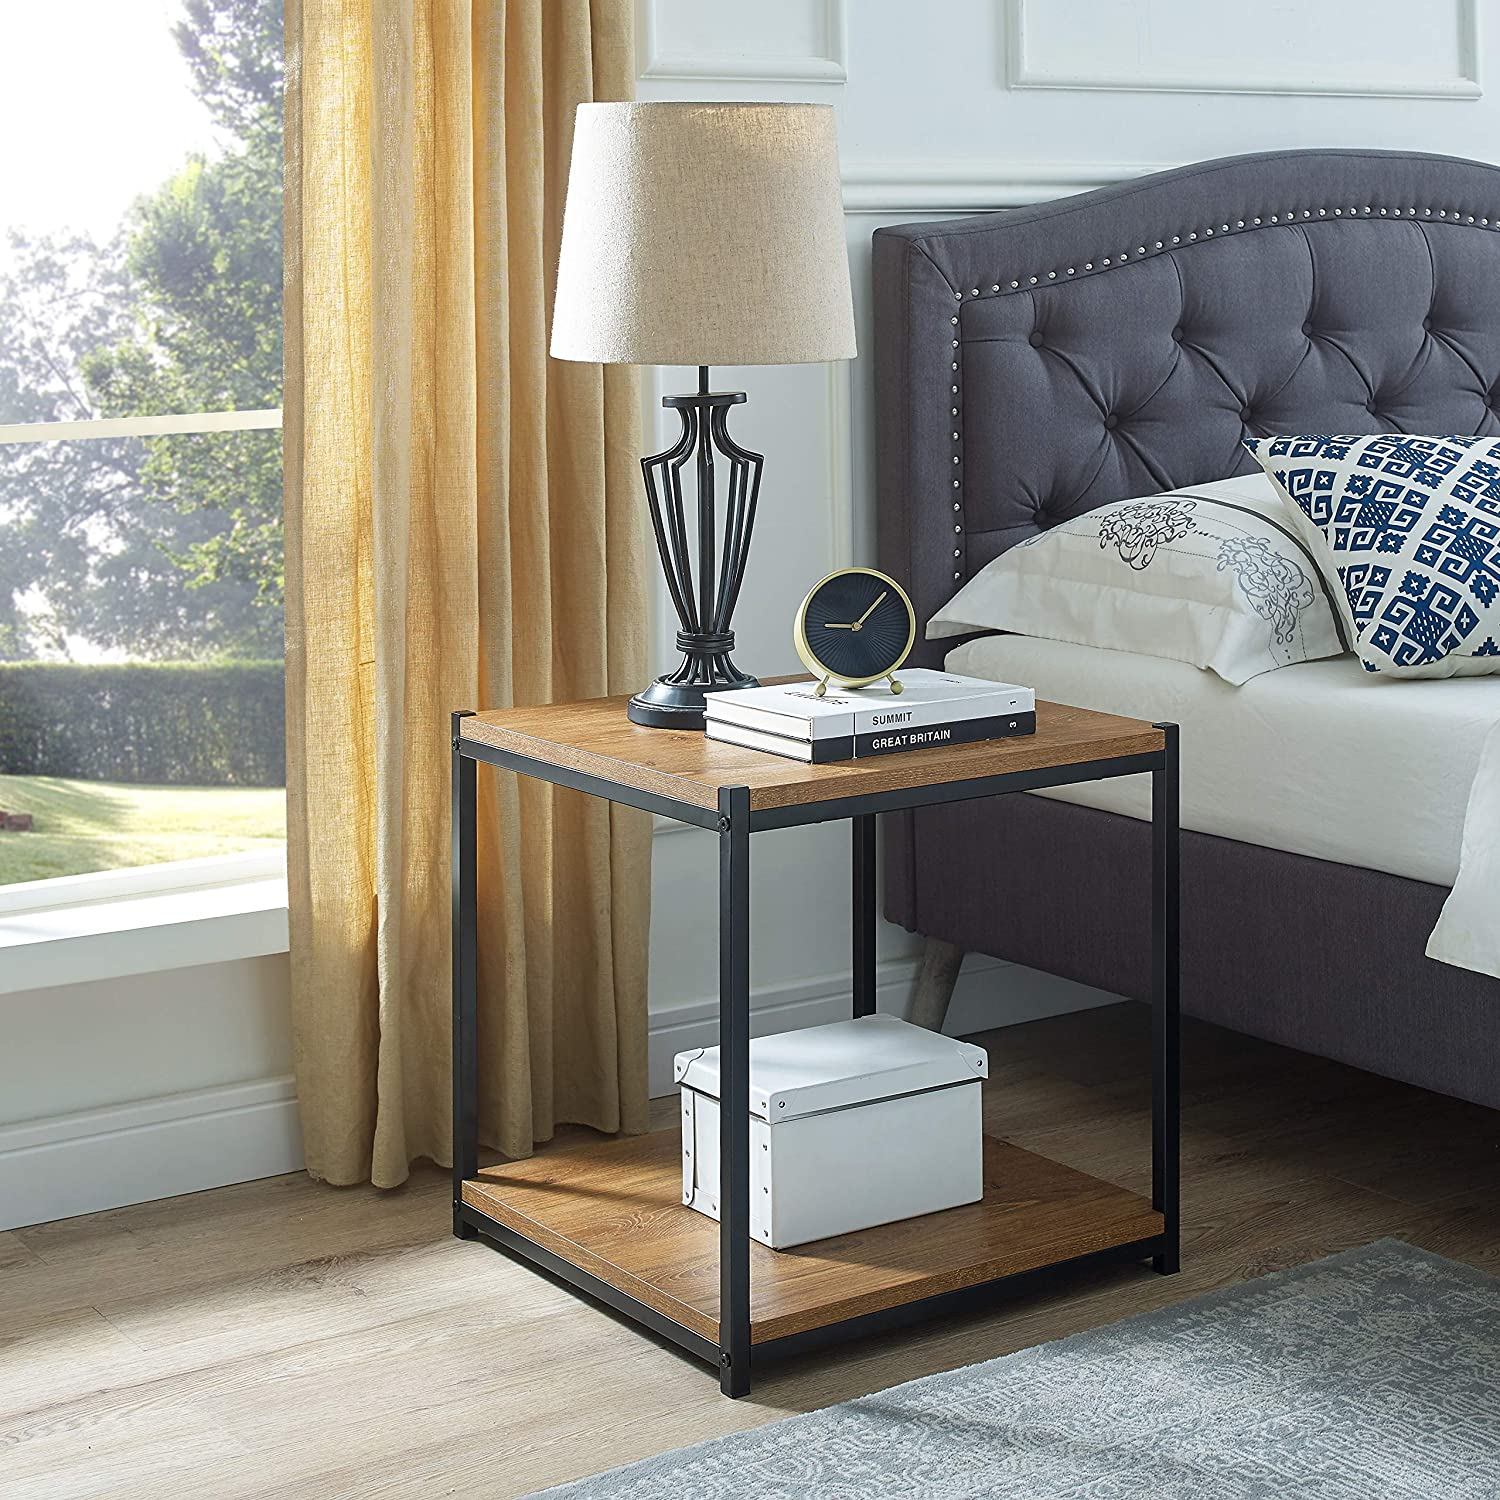 Tall Side End Table by CAFFOZ Furniture Designs |Brooklyn Series | Night Stand | Coffee Table |Storage Shelf | Sturdy | Easy Assembly | Brown Oak Wood Look Accent Furniture with Metal Frame